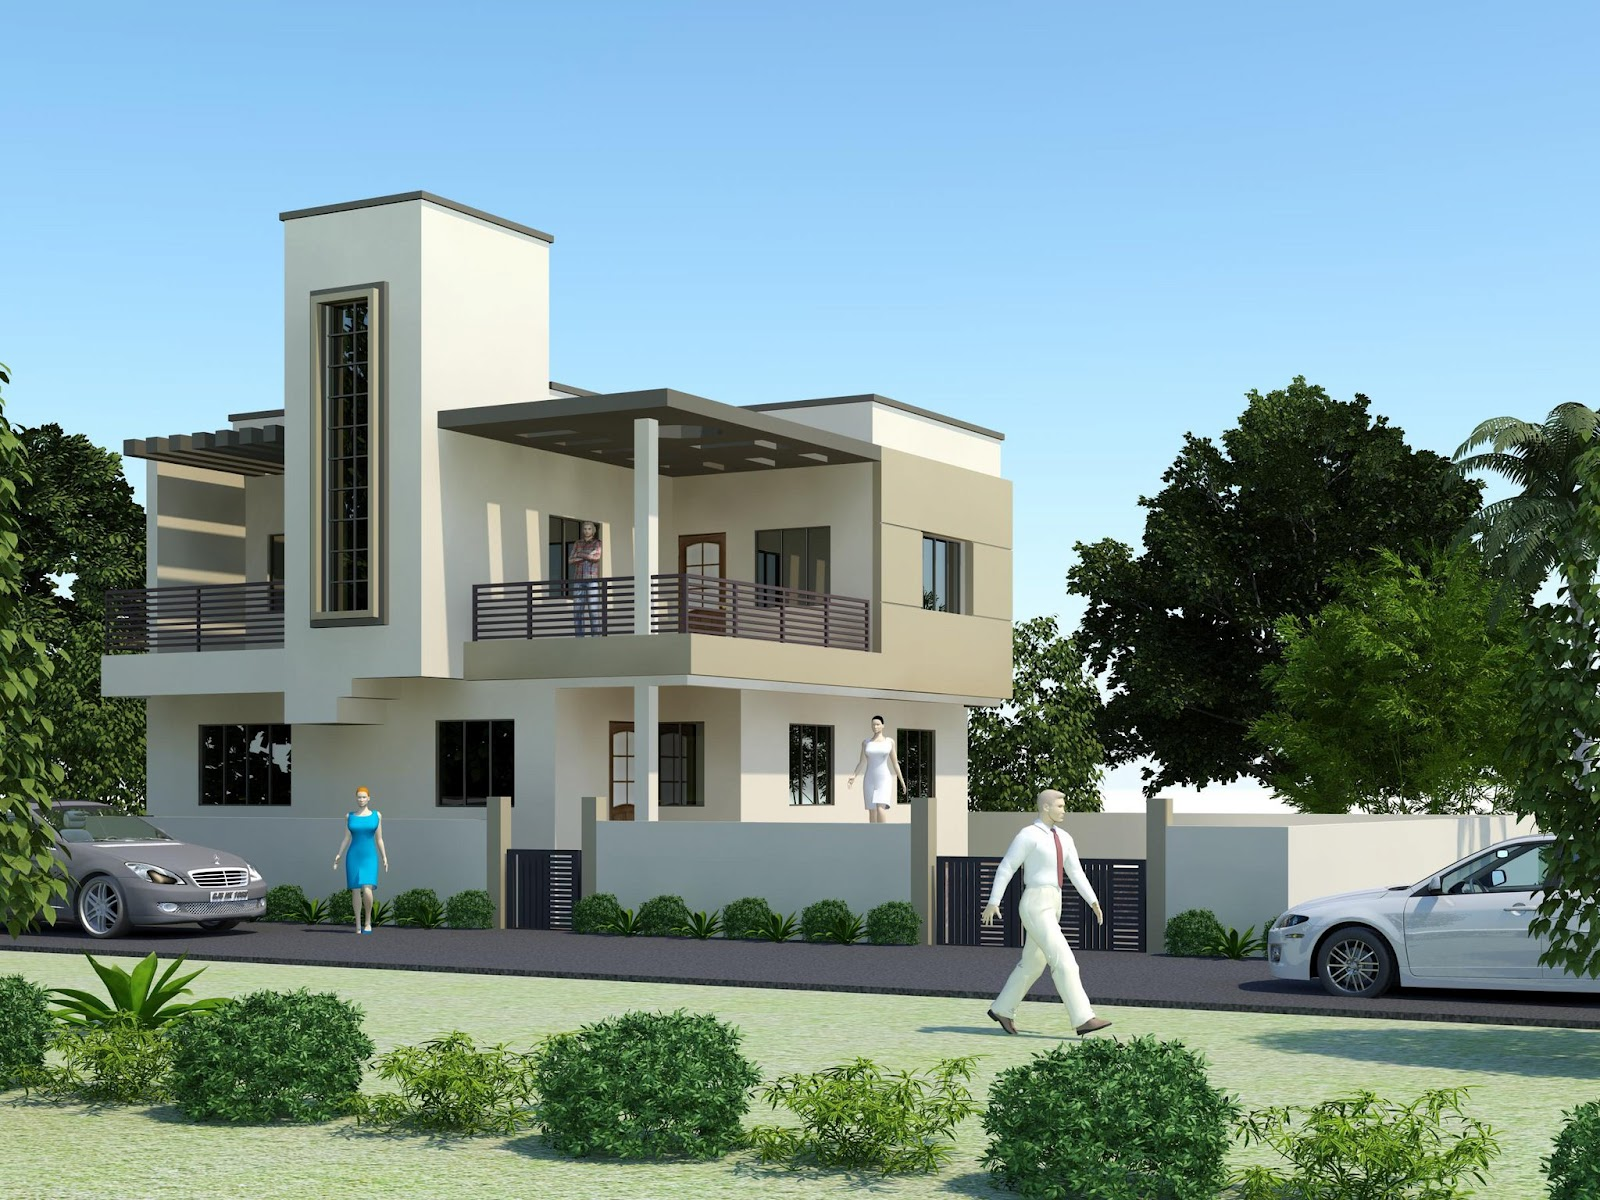 New home designs latest modern homes exterior designs for House exterior design pictures in indian